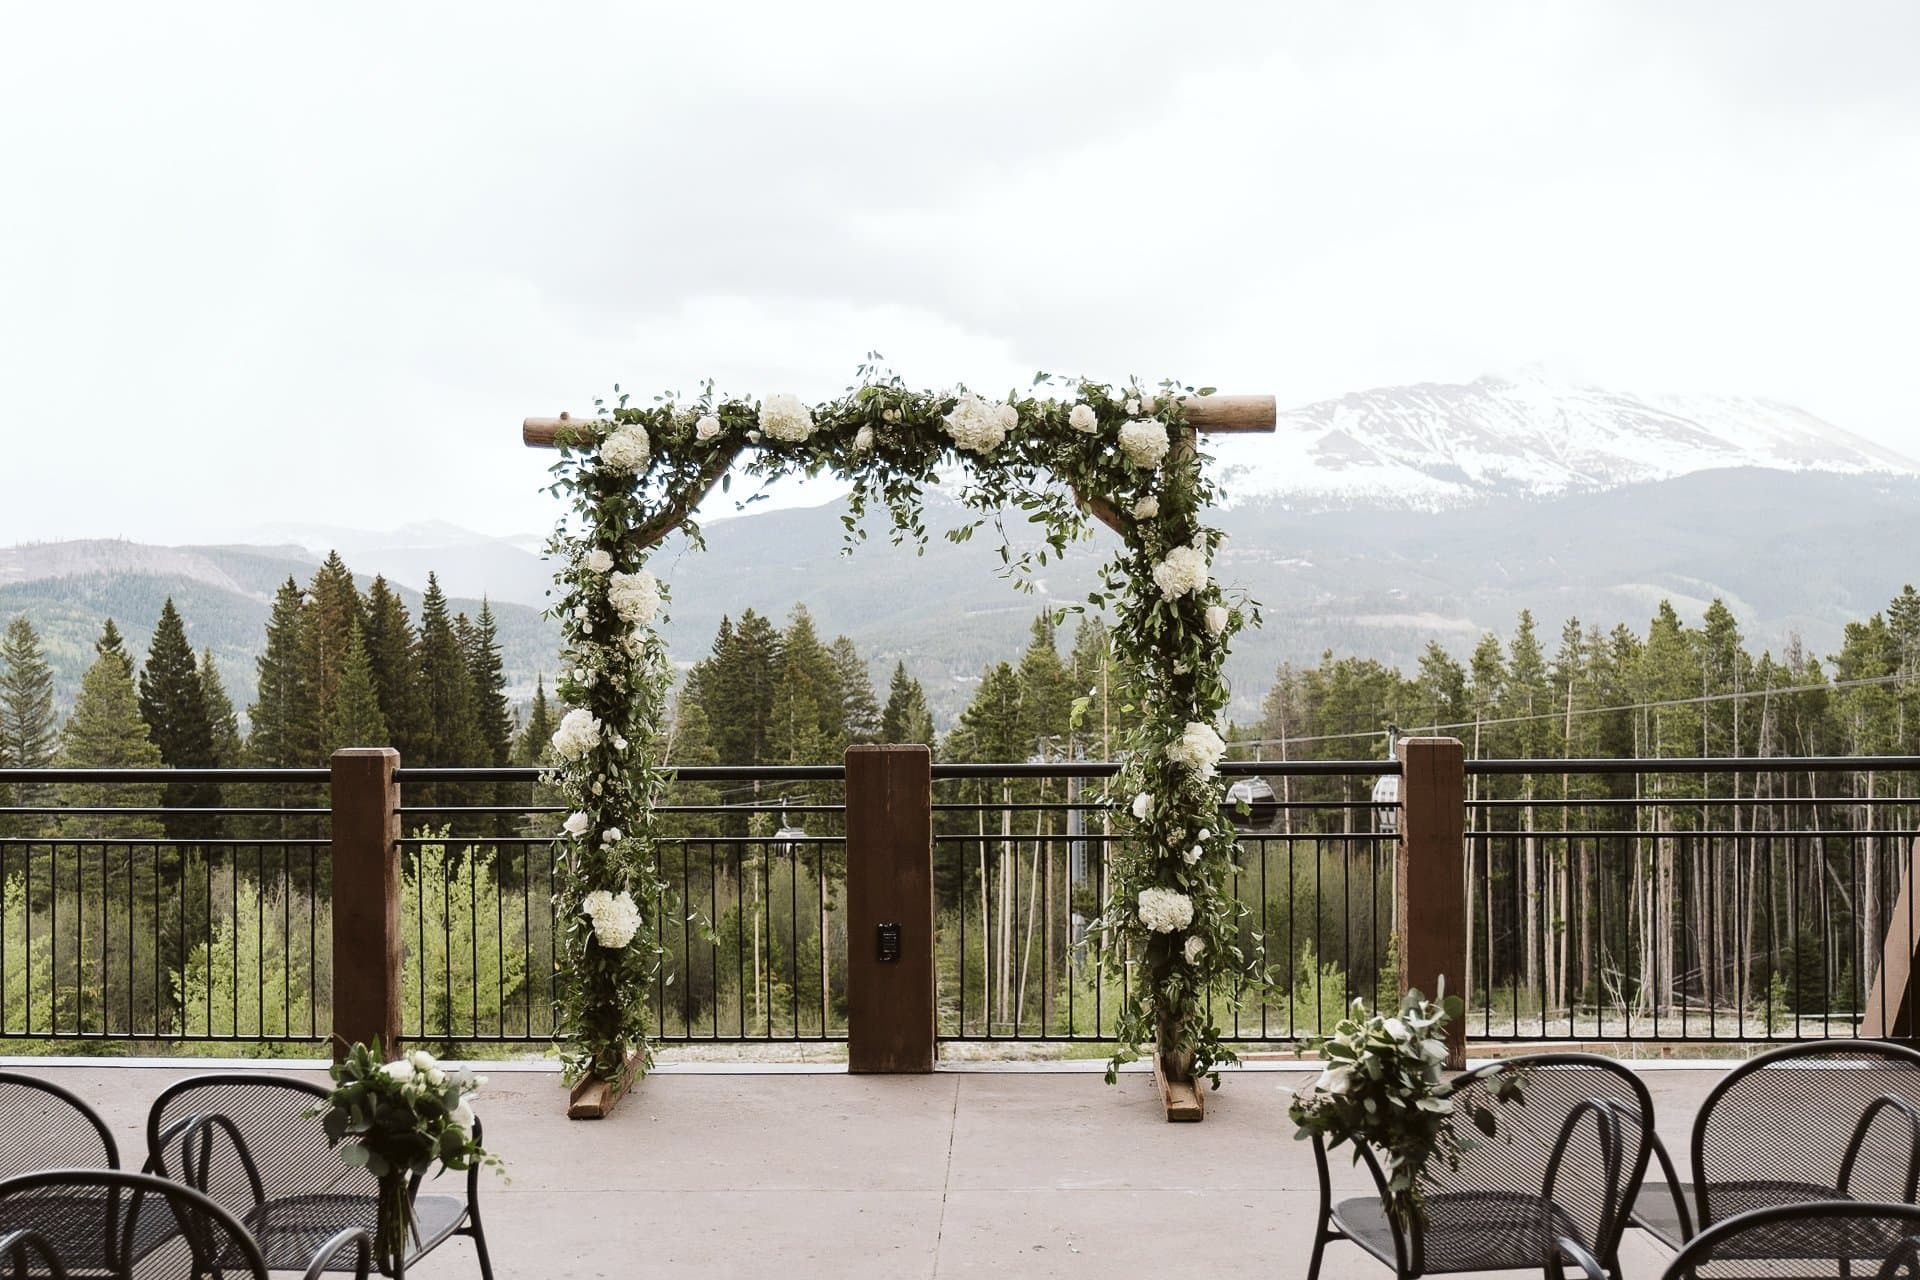 Wedding ceremony and reception at Sevens at Breckenridge Ski Resort, Colorado mountain wedding photographer